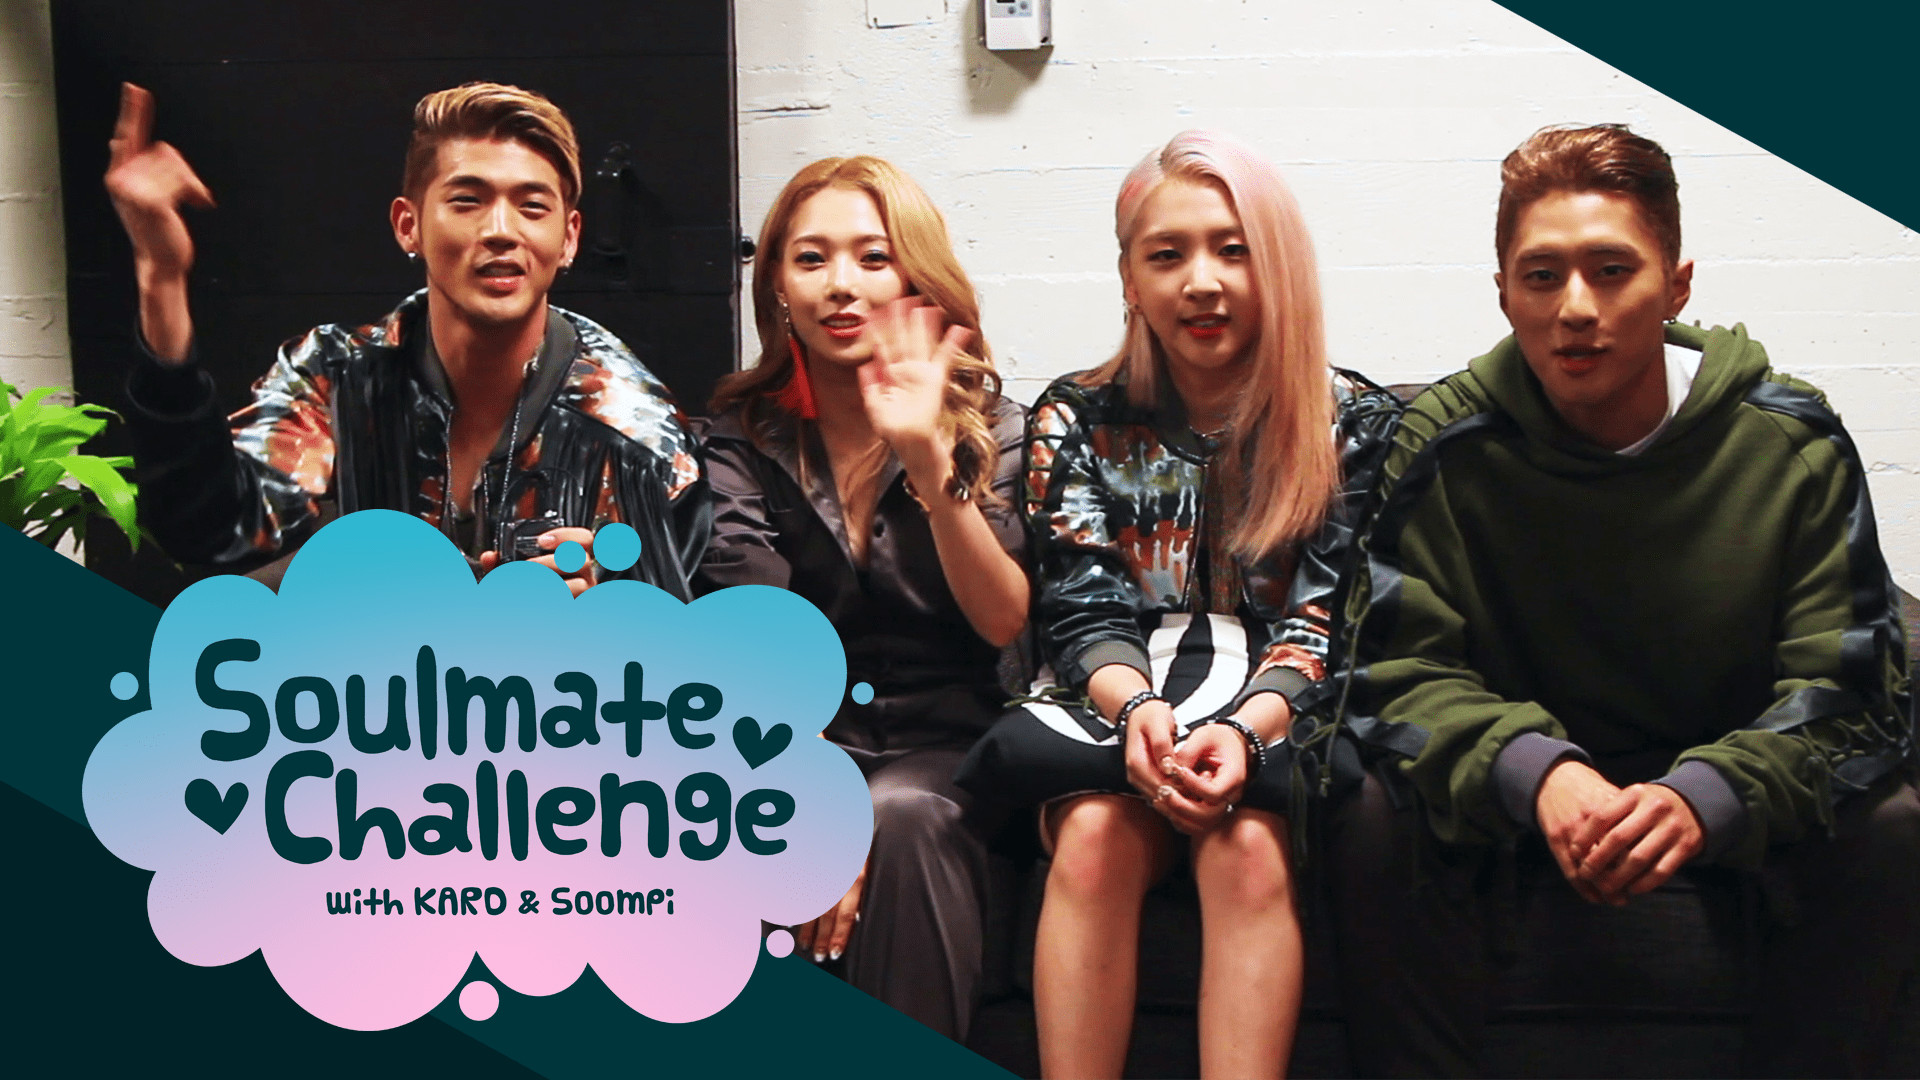 QUIZ: K.A.R.D Challenges YOU To Take The Soulmate Challenge